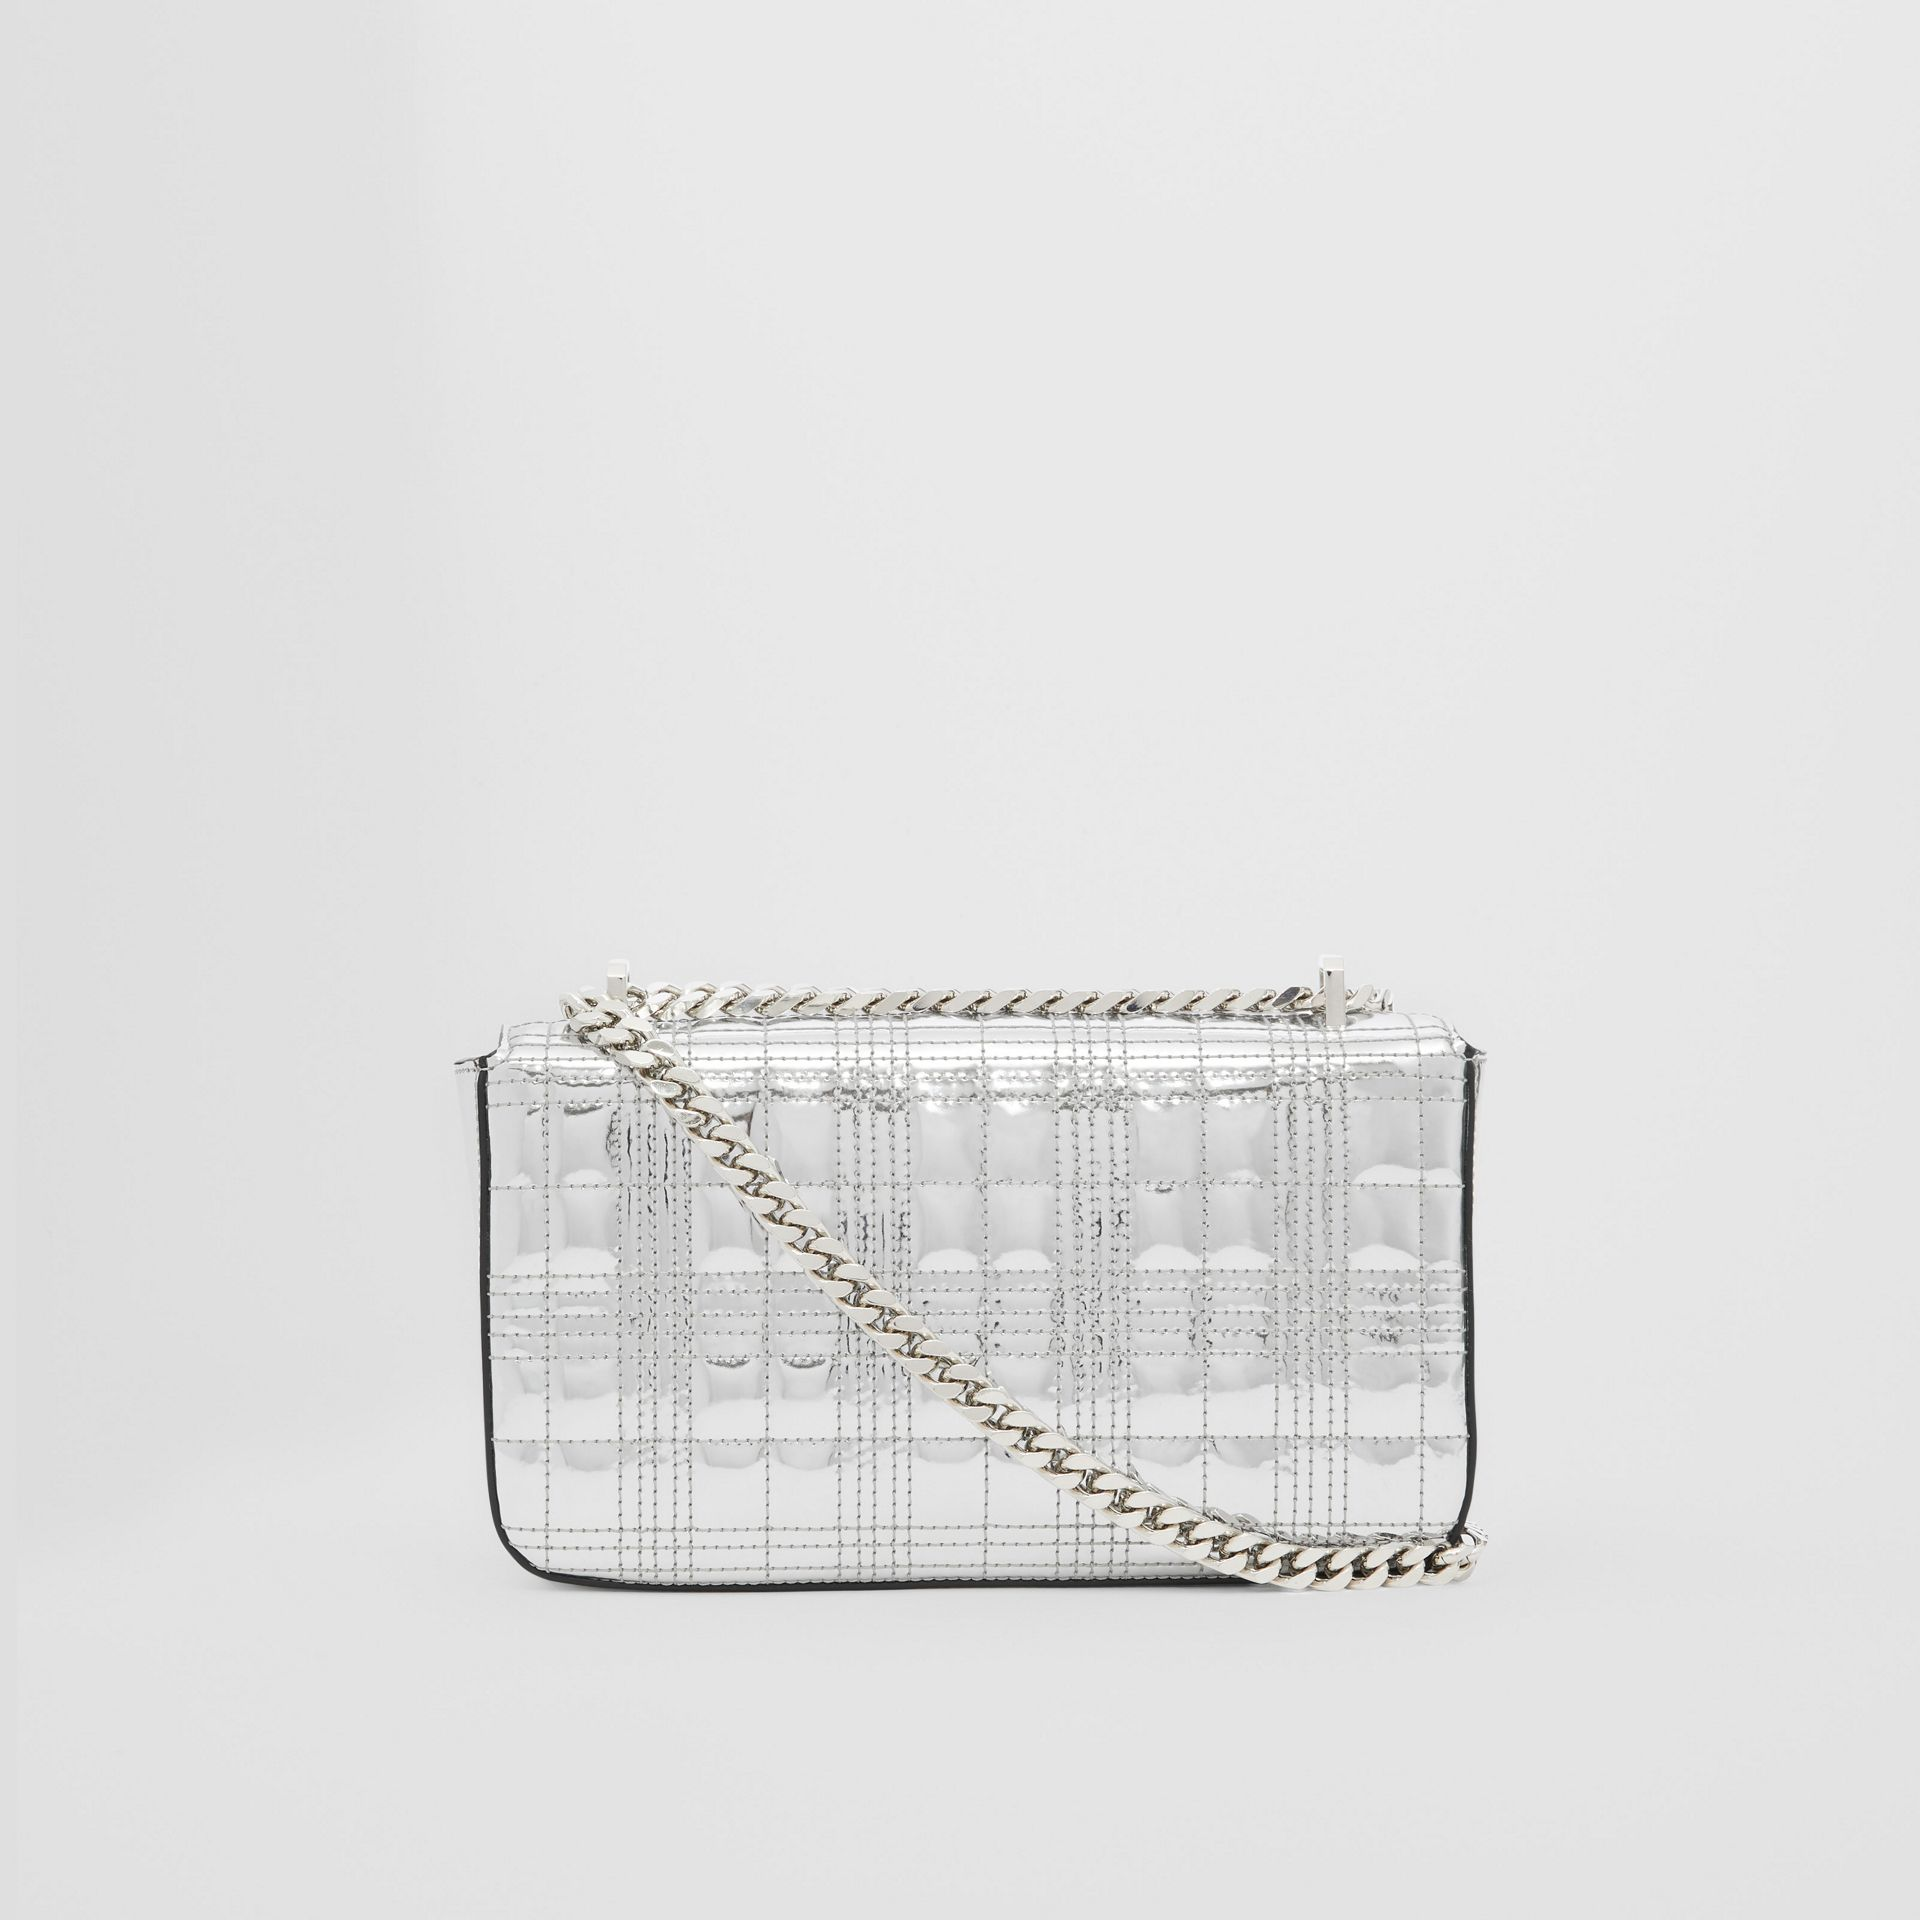 Small Quilted Metallic Leather Lola Bag in Silver - Women | Burberry - gallery image 5